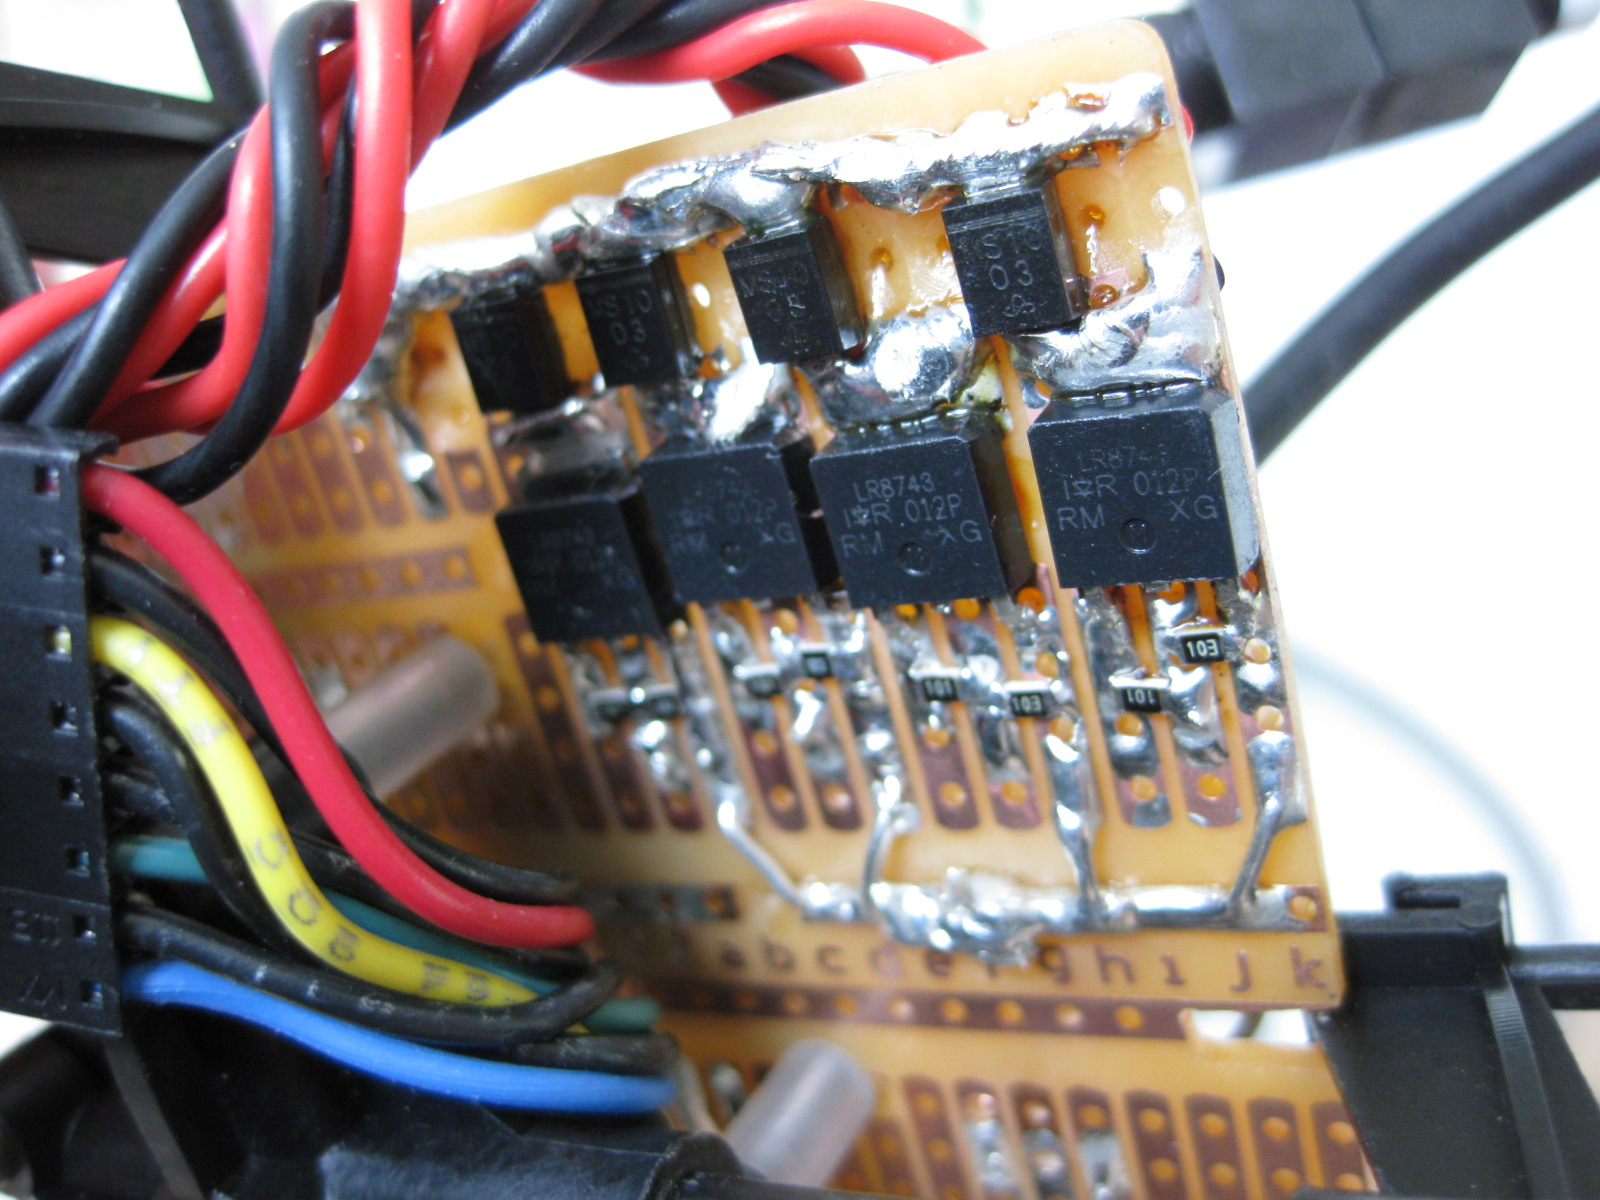 Quadcopter Prototype Using Acc Gyro And A Pic Starlino Electronics Rc Servo Controller Circuit Pic18f252 Youll See The Mosfets Schottky Diodes Also Note Extra Solder Added To Support High Currents That Will Flow Through Those Traces Up 5a